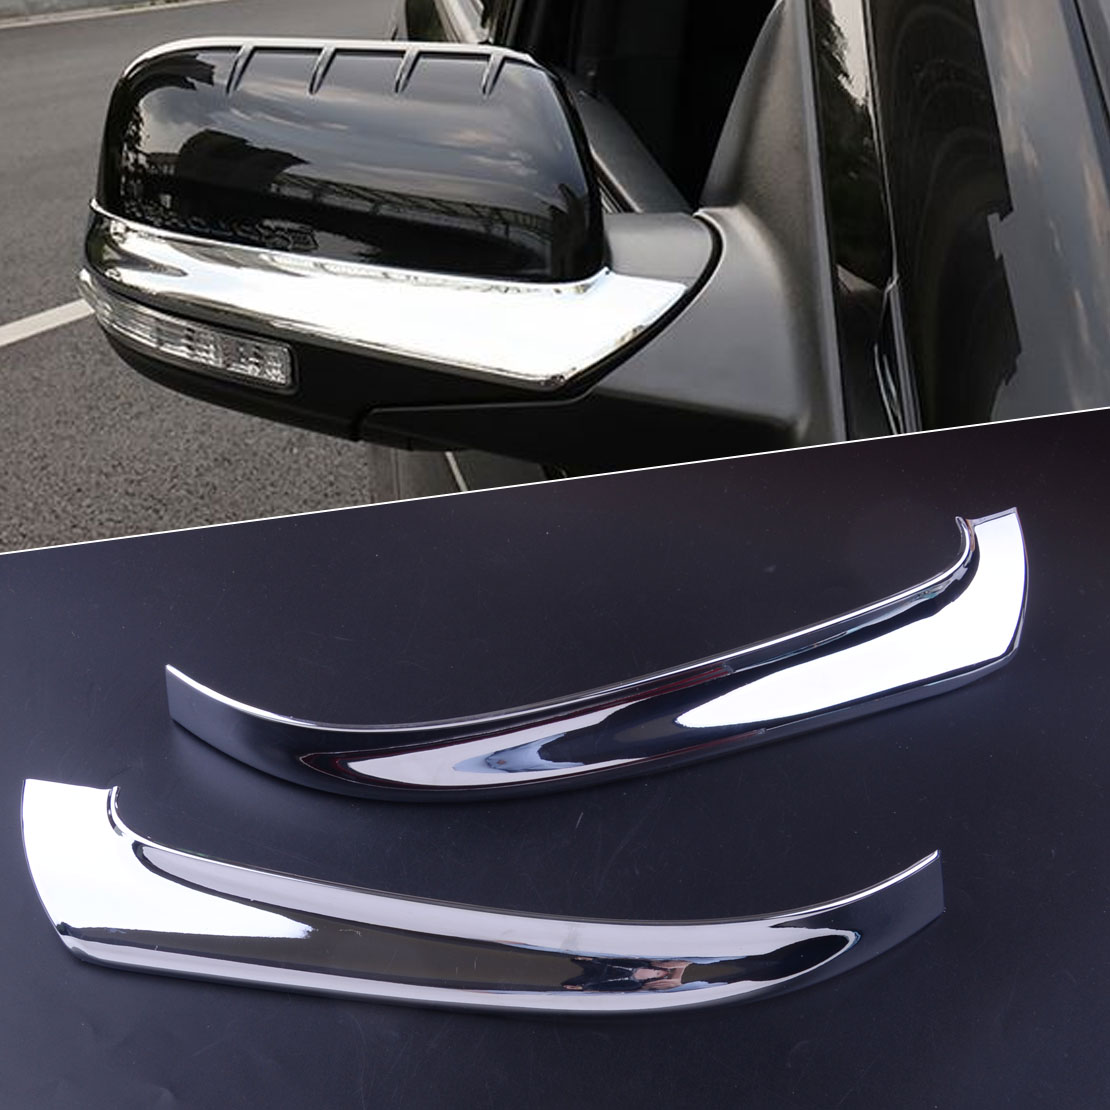 beler 2pcs Silver ABS Left Right Chrome Plated Rearview Side <font><b>Mirror</b></font> Cover Strip Trim Fit For <font><b>Ford</b></font> <font><b>Explorer</b></font> 2016 2017 2018 2019 image